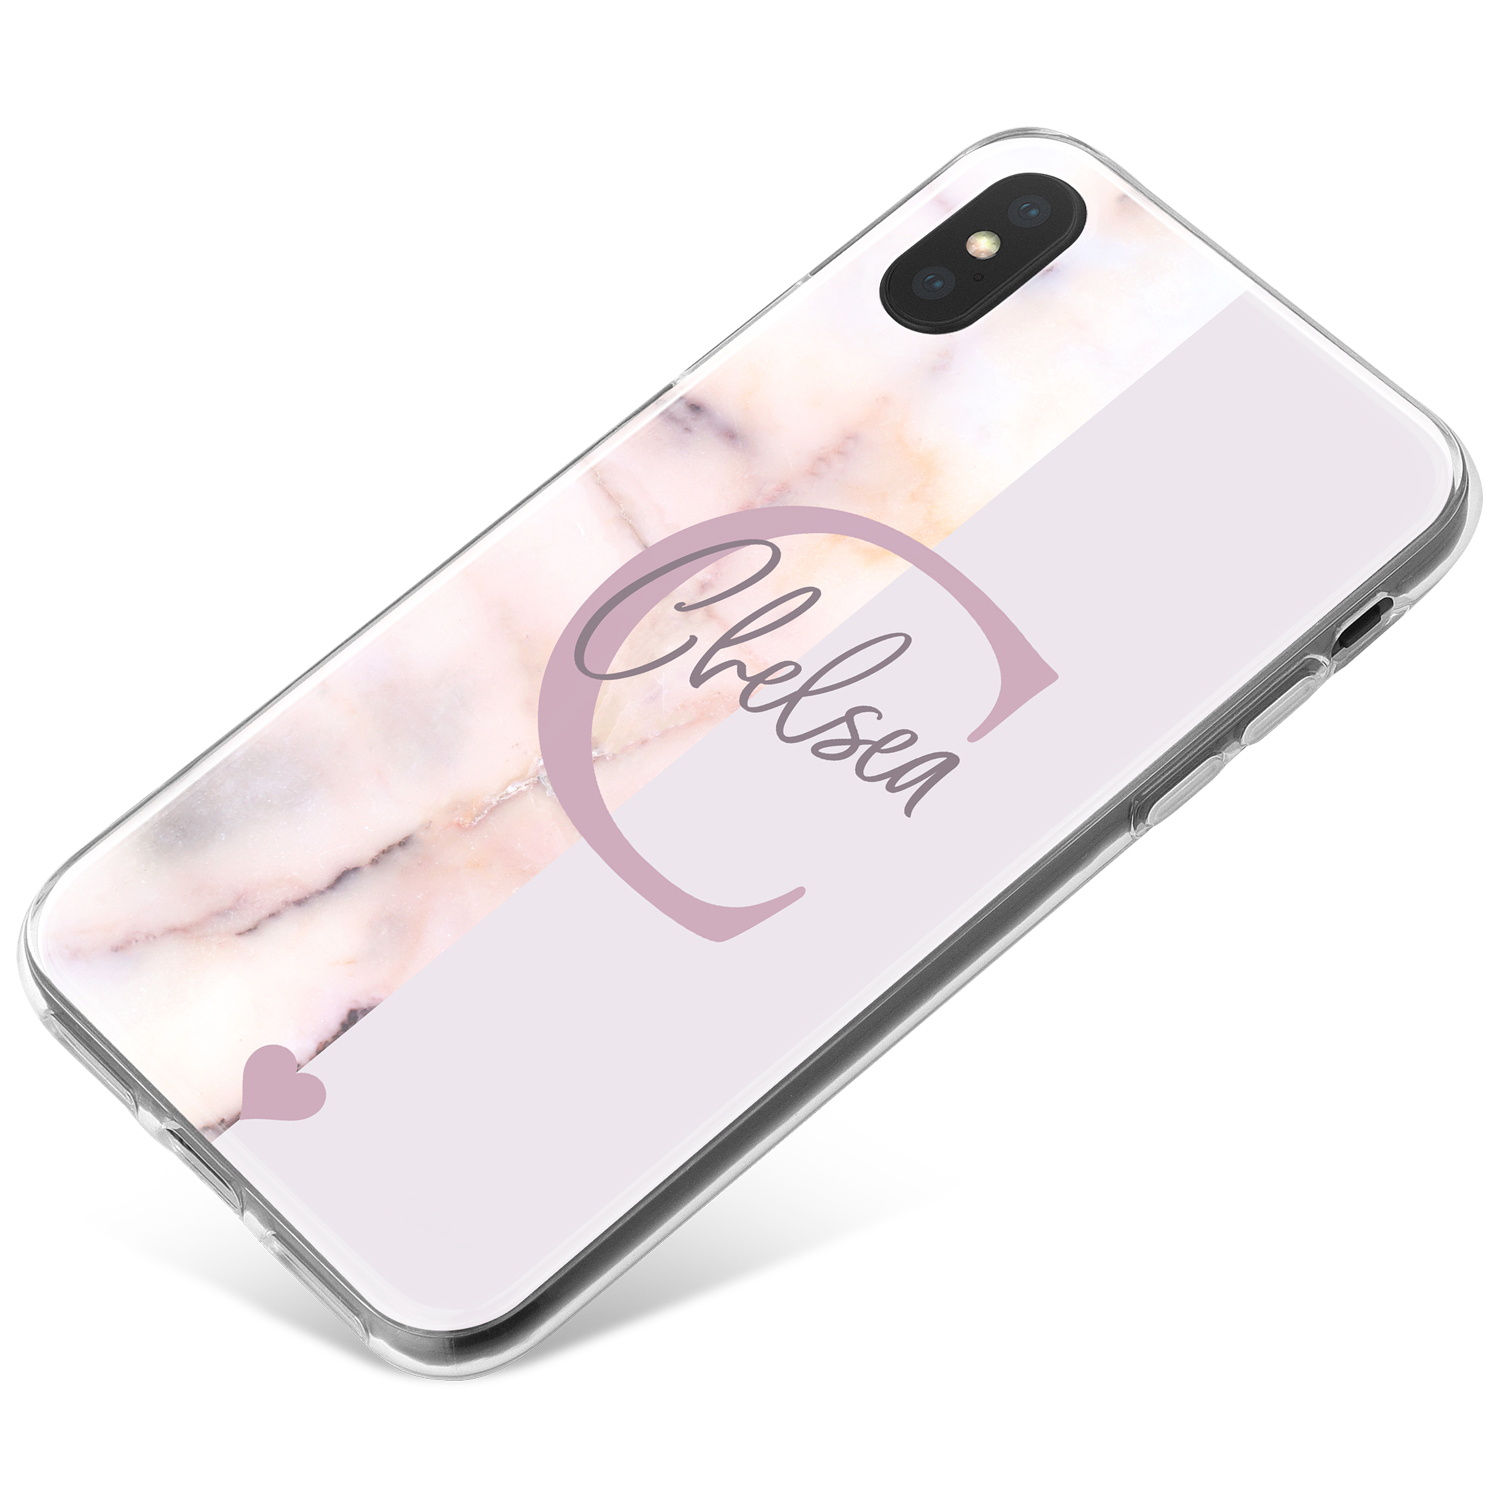 Half Marble, Half Grey phone case available for all major manufacturers including Apple, Samsung & Sony